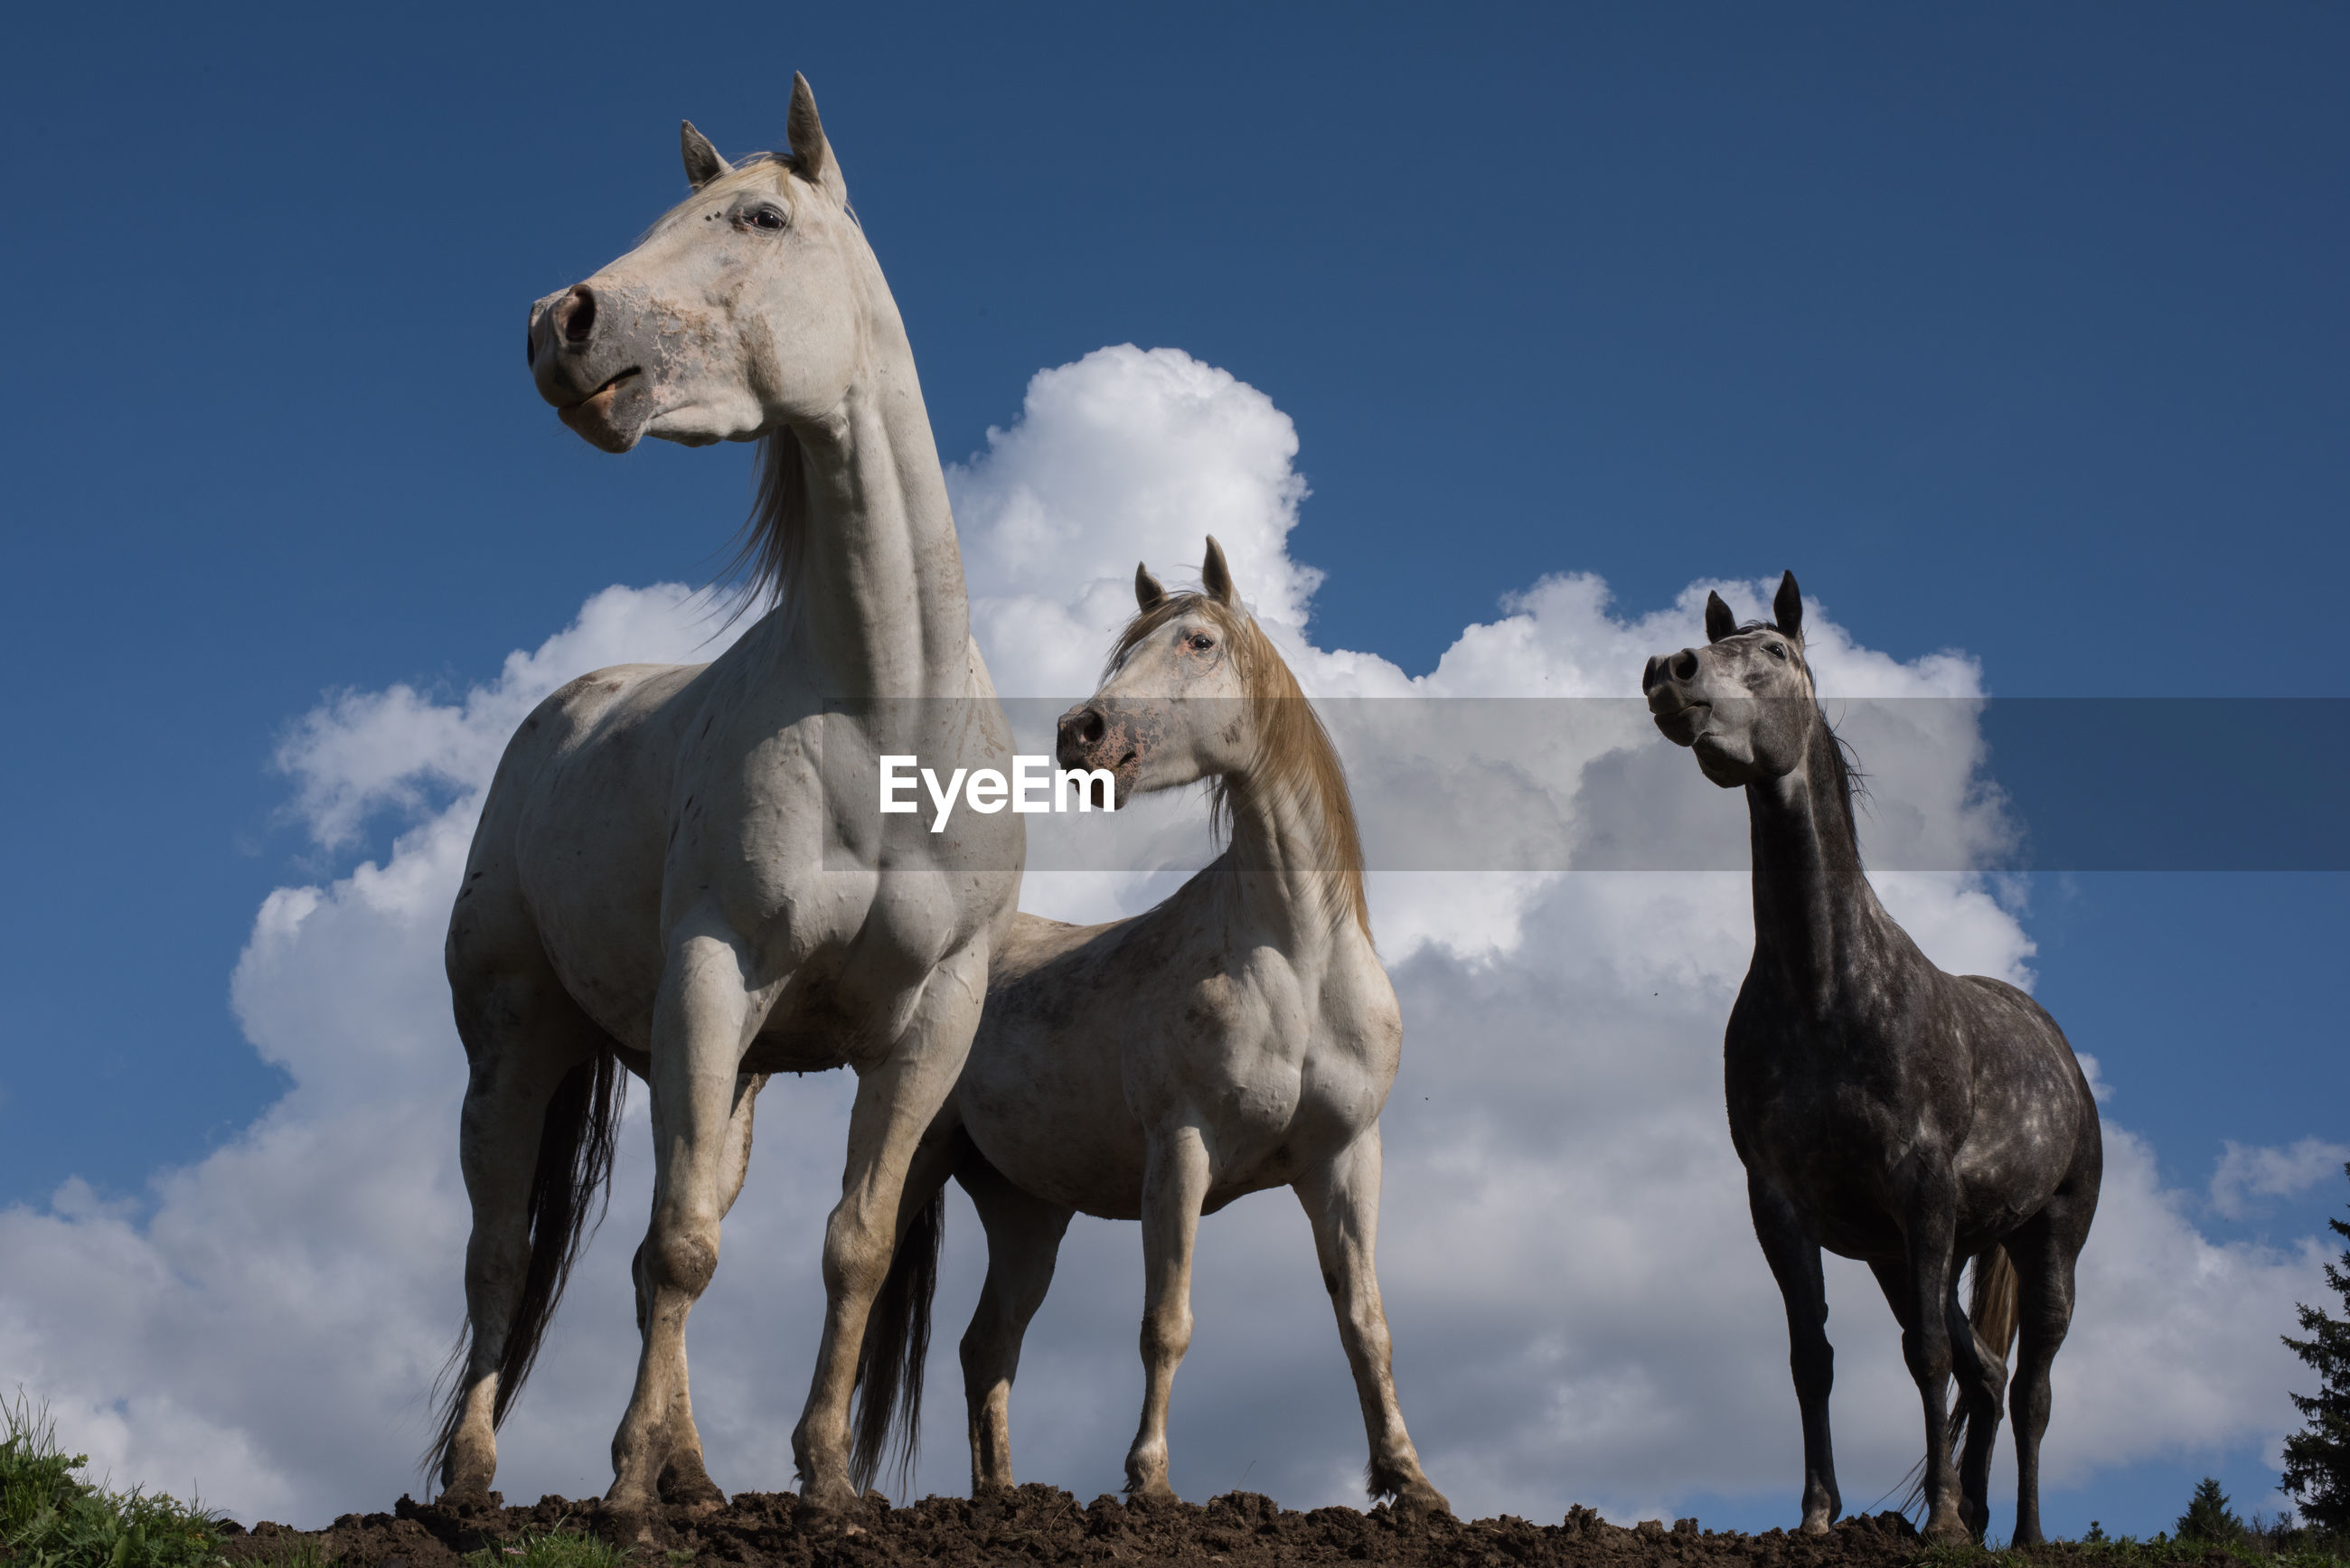 Low angle view of horses against sky